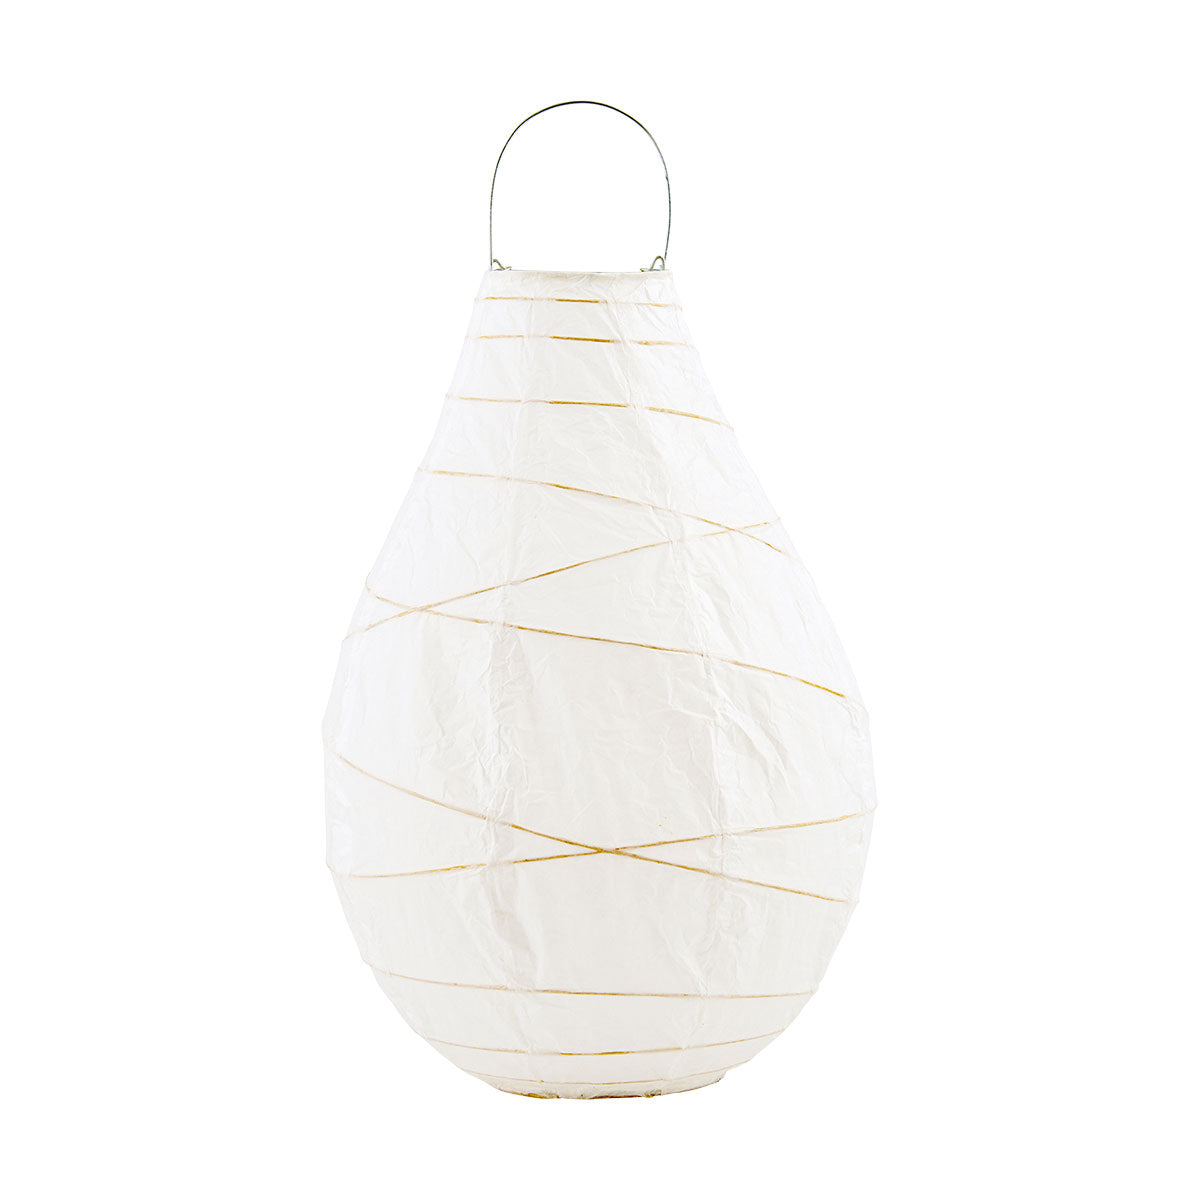 House Doctor Indoor/Outdoor Drop Lantern White - Scandi Minimal